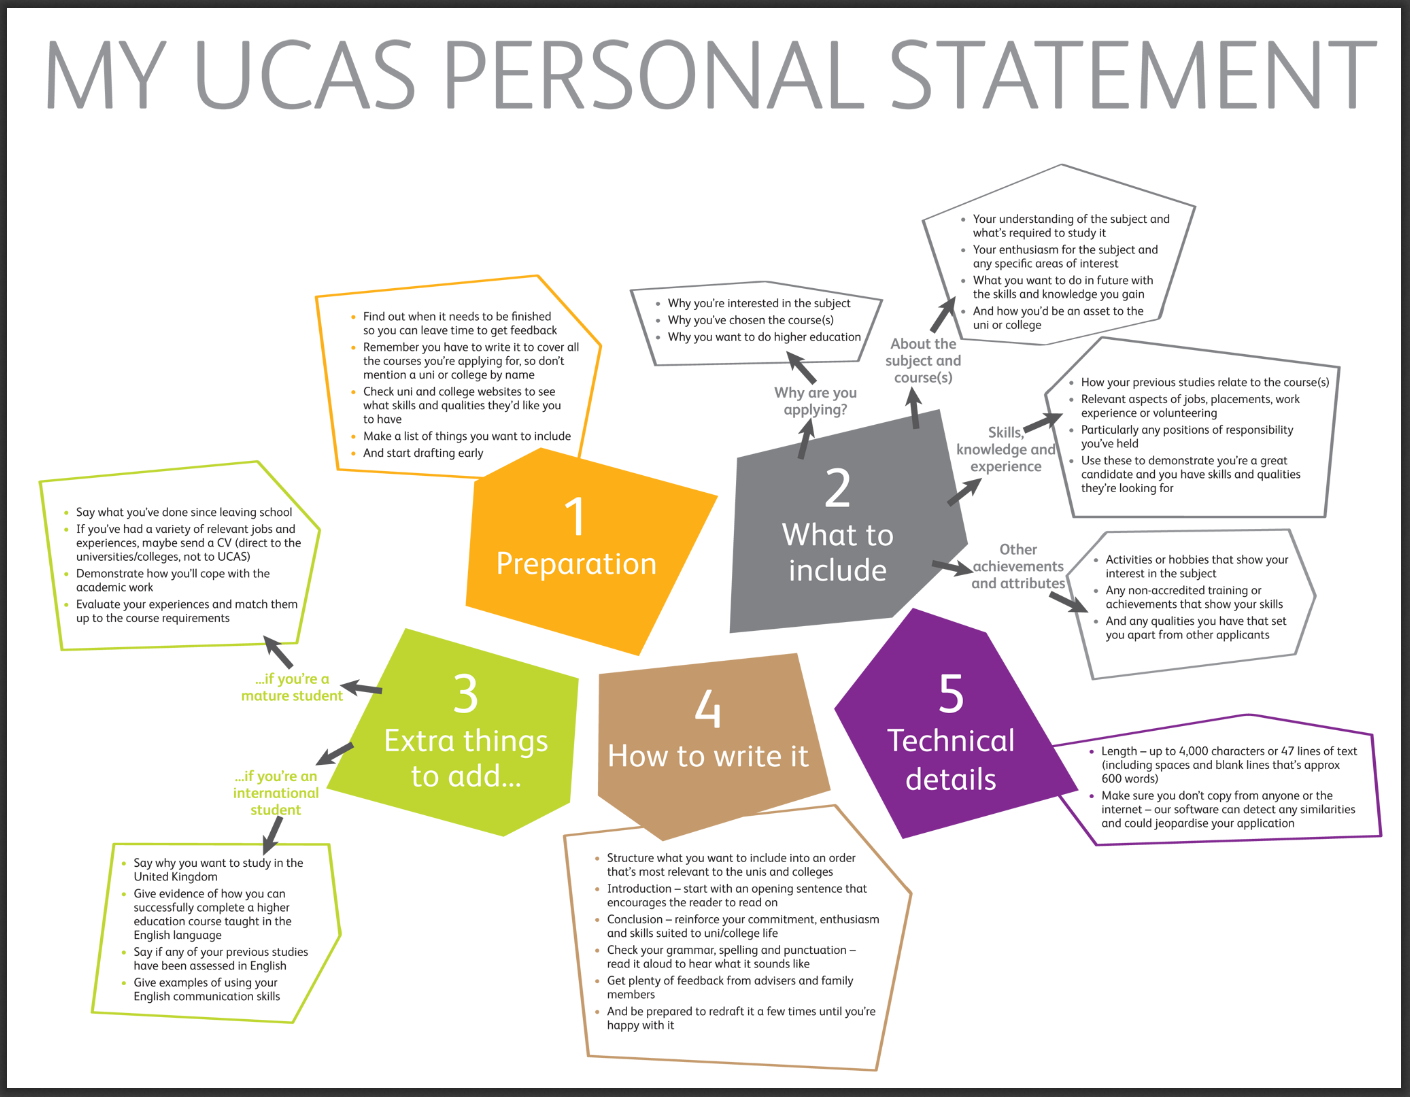 UCAS Personal Statement Info [Tips and guides] Writing a personal ...